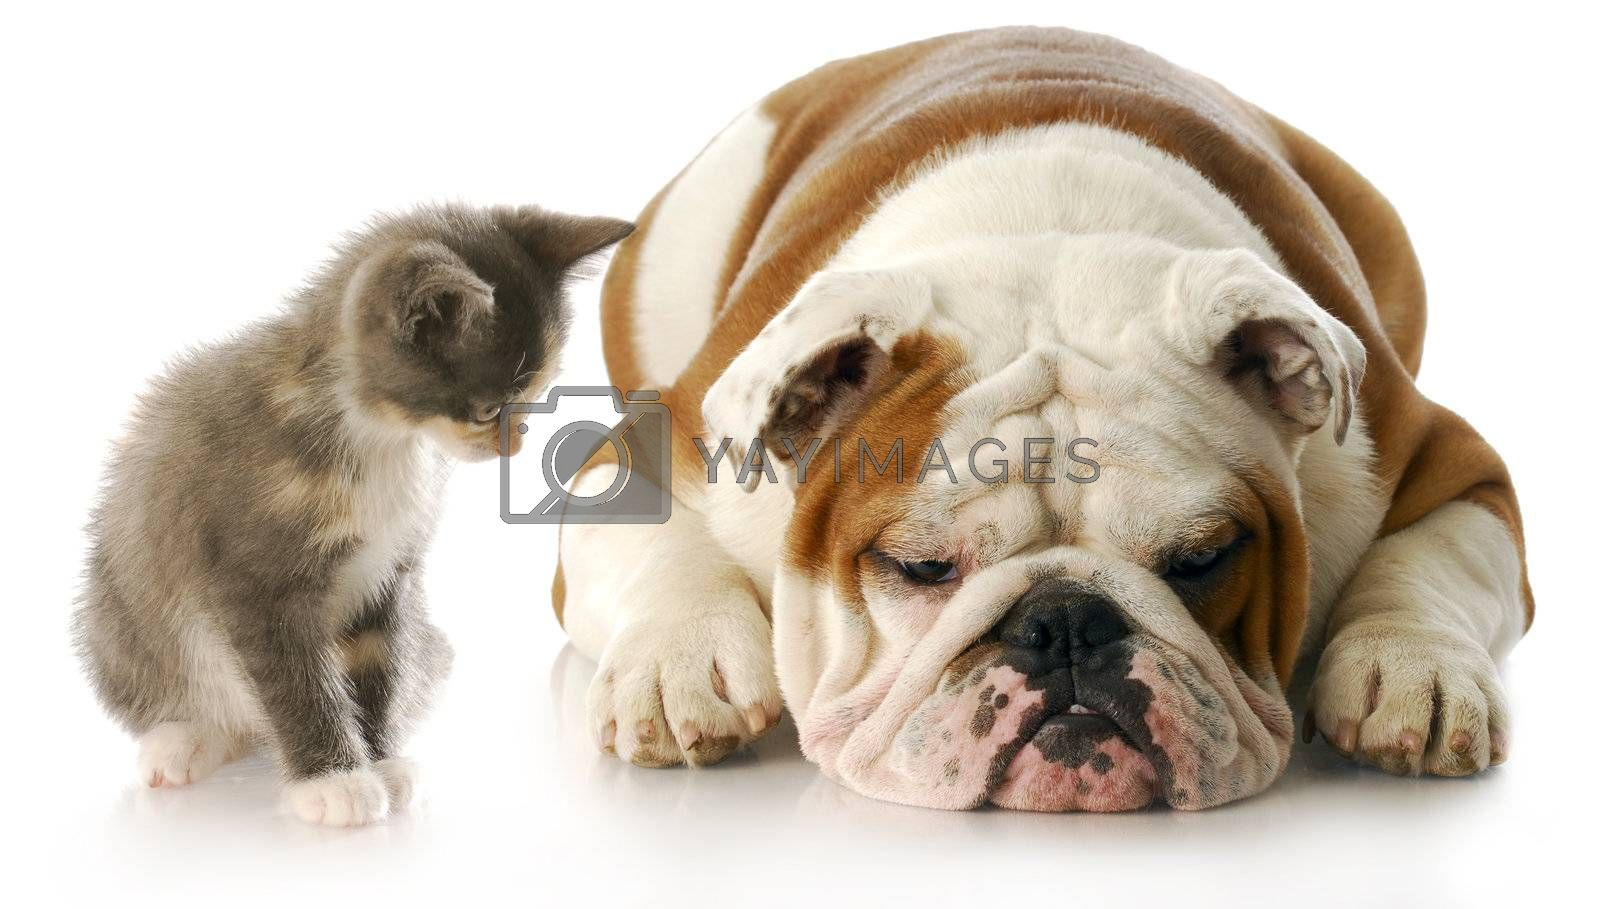 kitten looking down at english bulldog puppy that is laying down sulking with reflection on white background